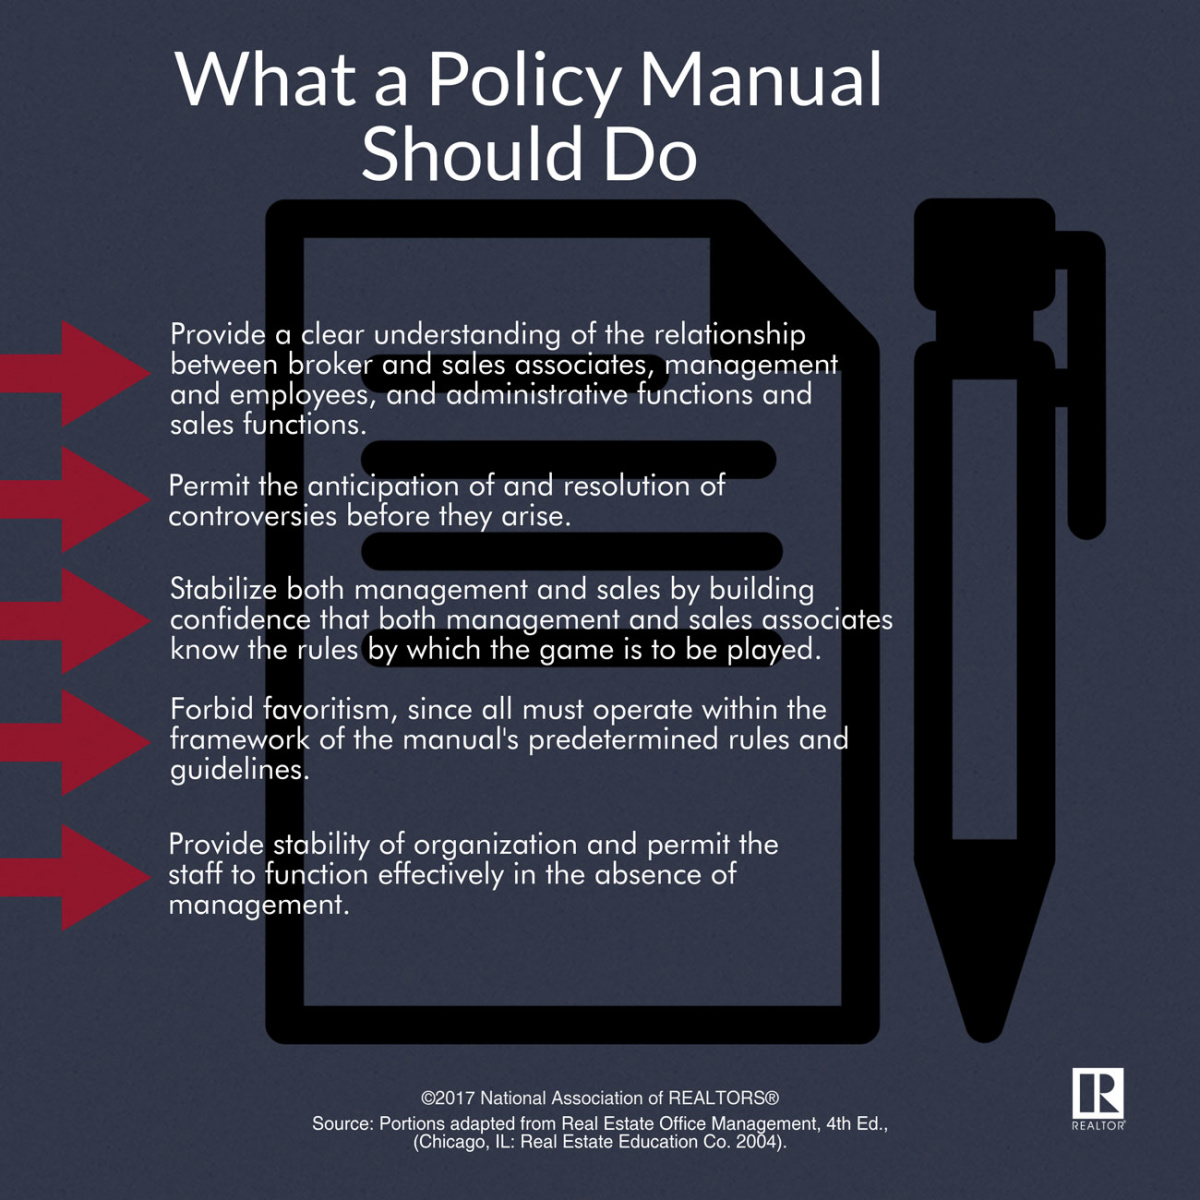 What a Policy Manual Should Do